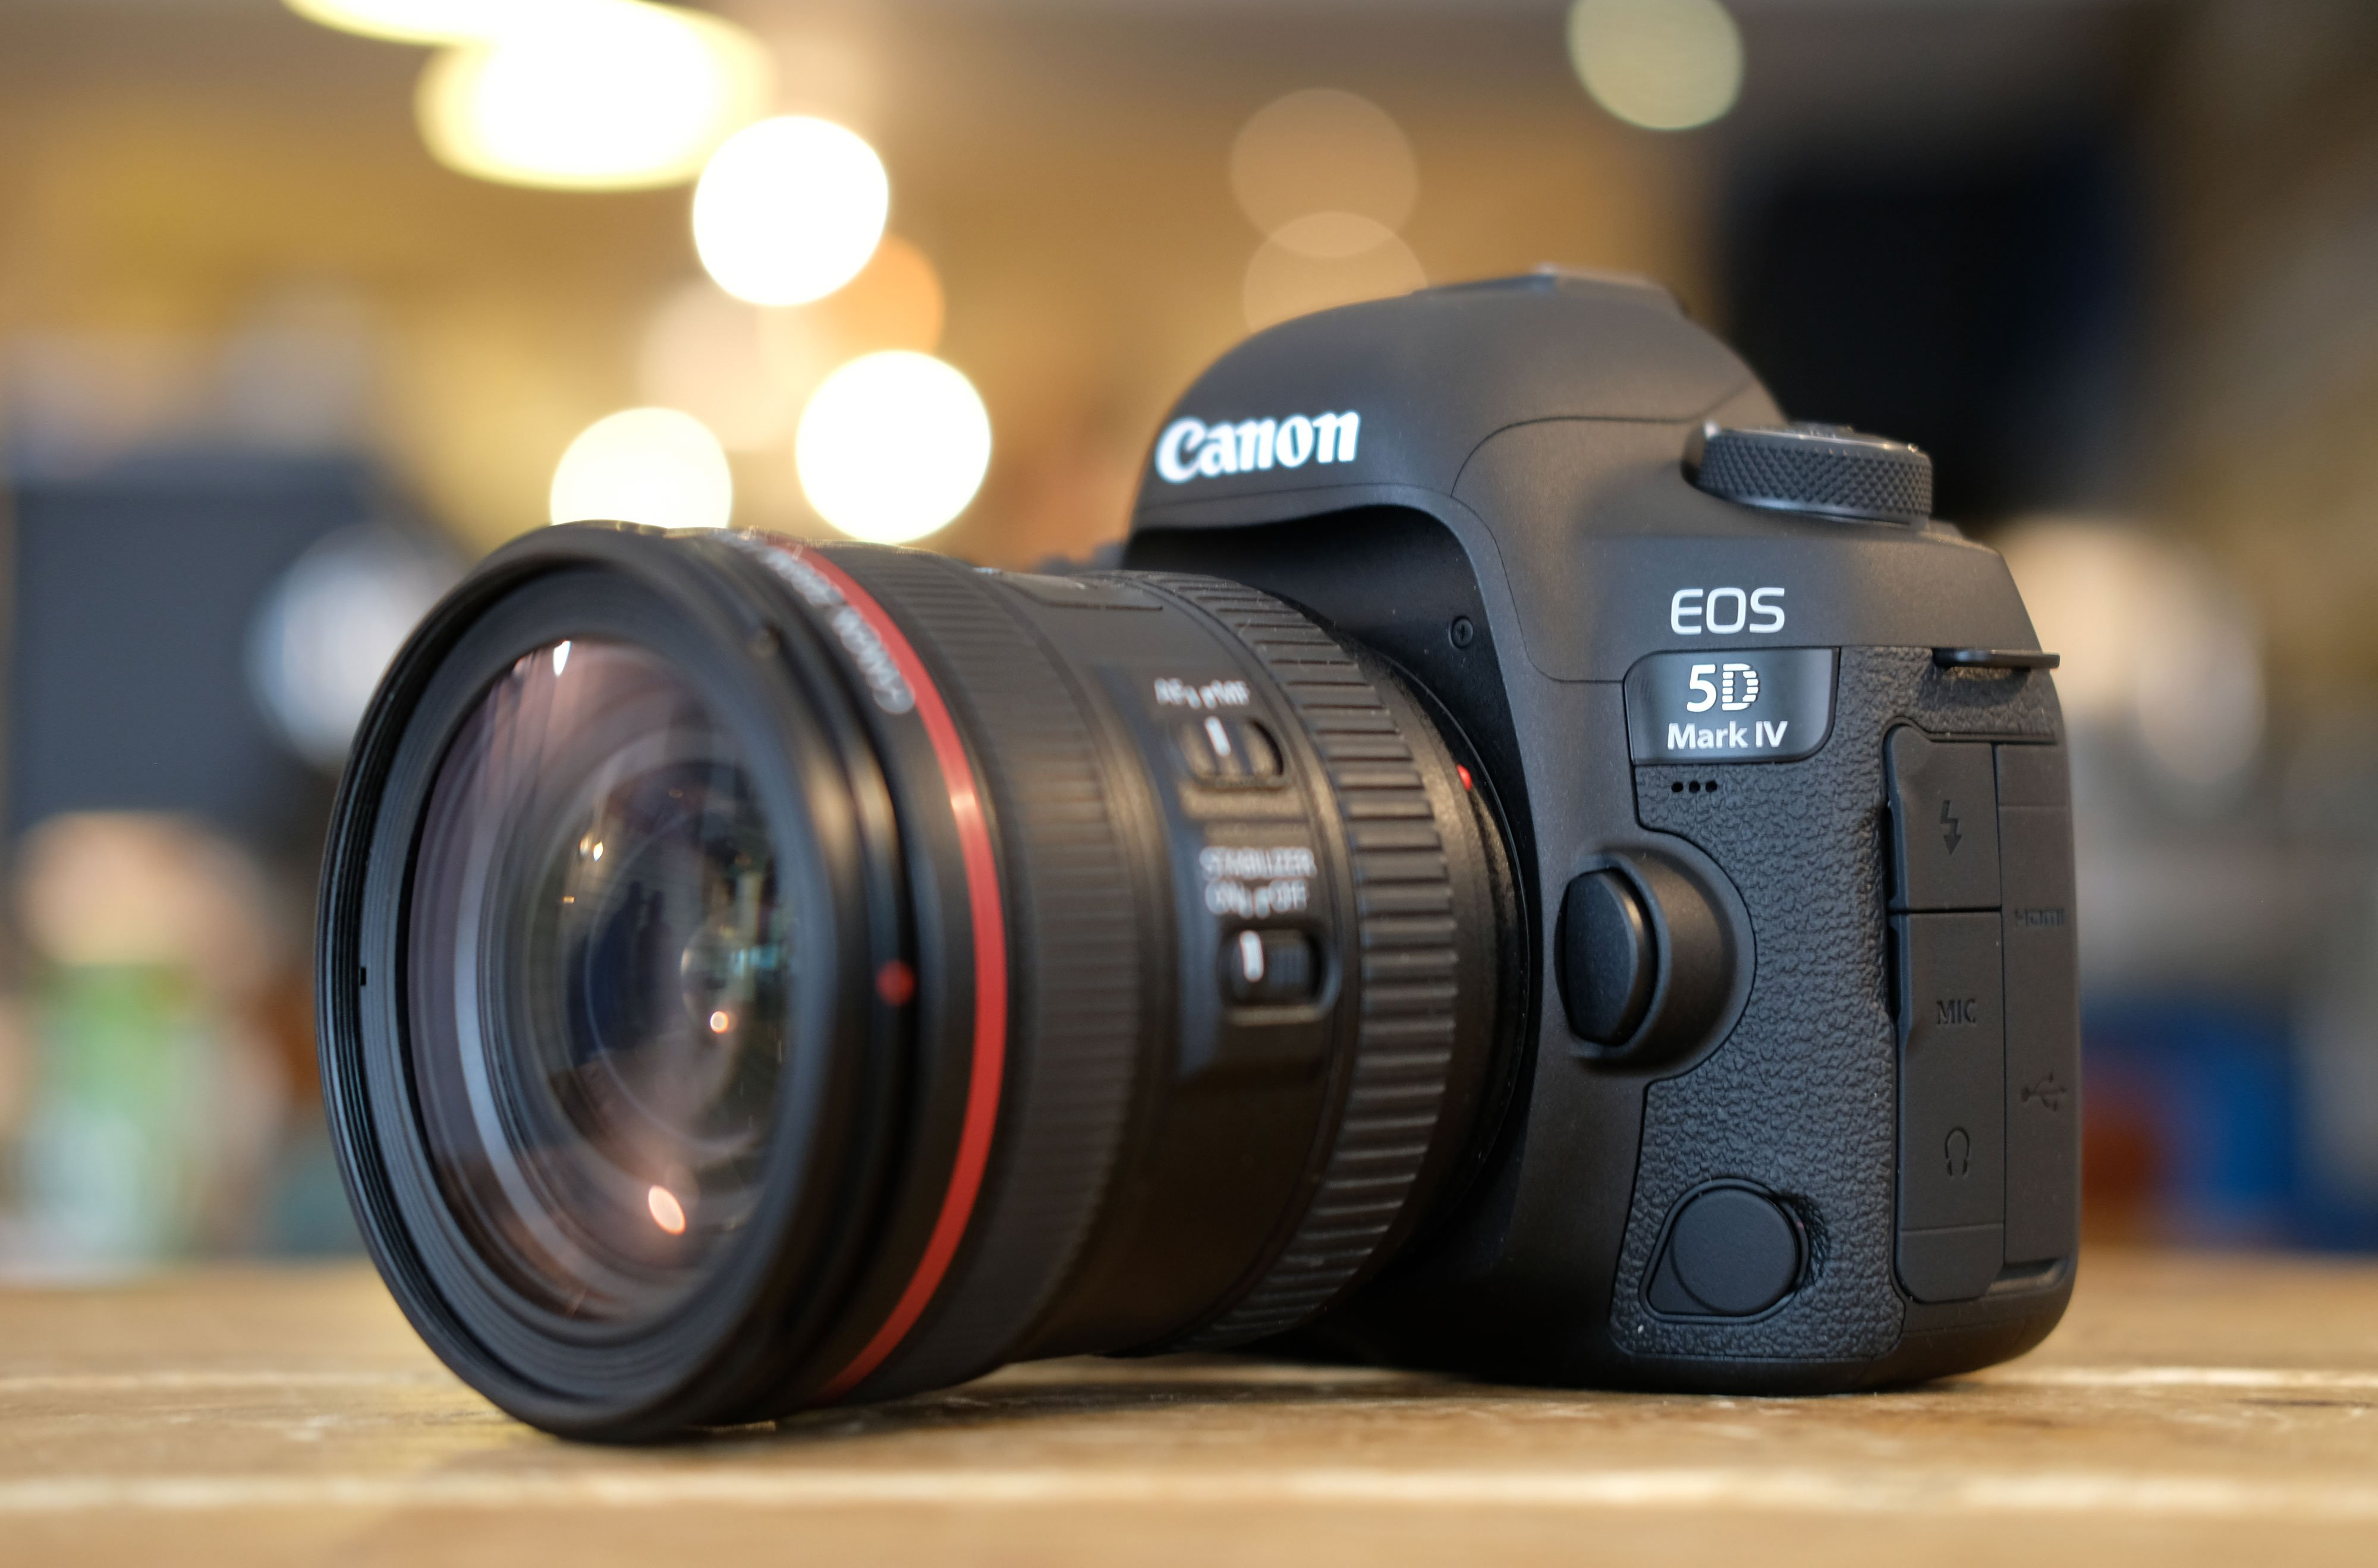 Image result for images of Canon EOS 5D Mark IV